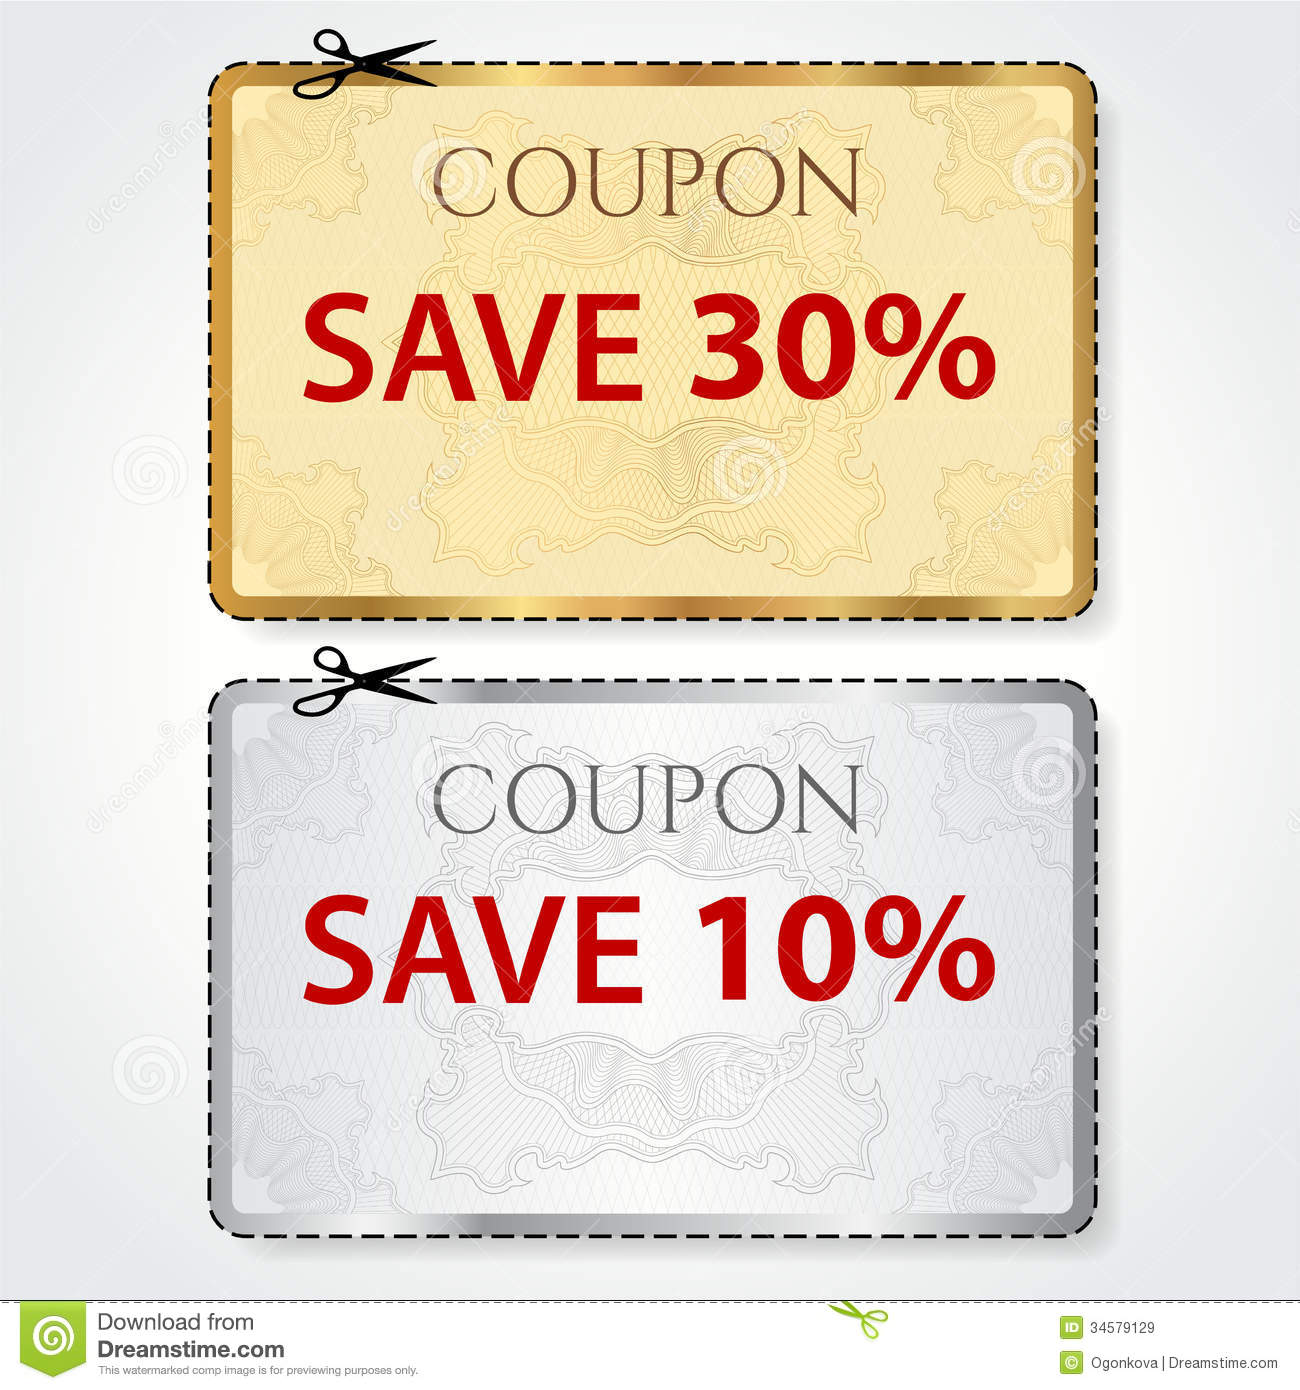 Discount Voucher Template Coupon Designticketget Discount – Free Discount Vouchers